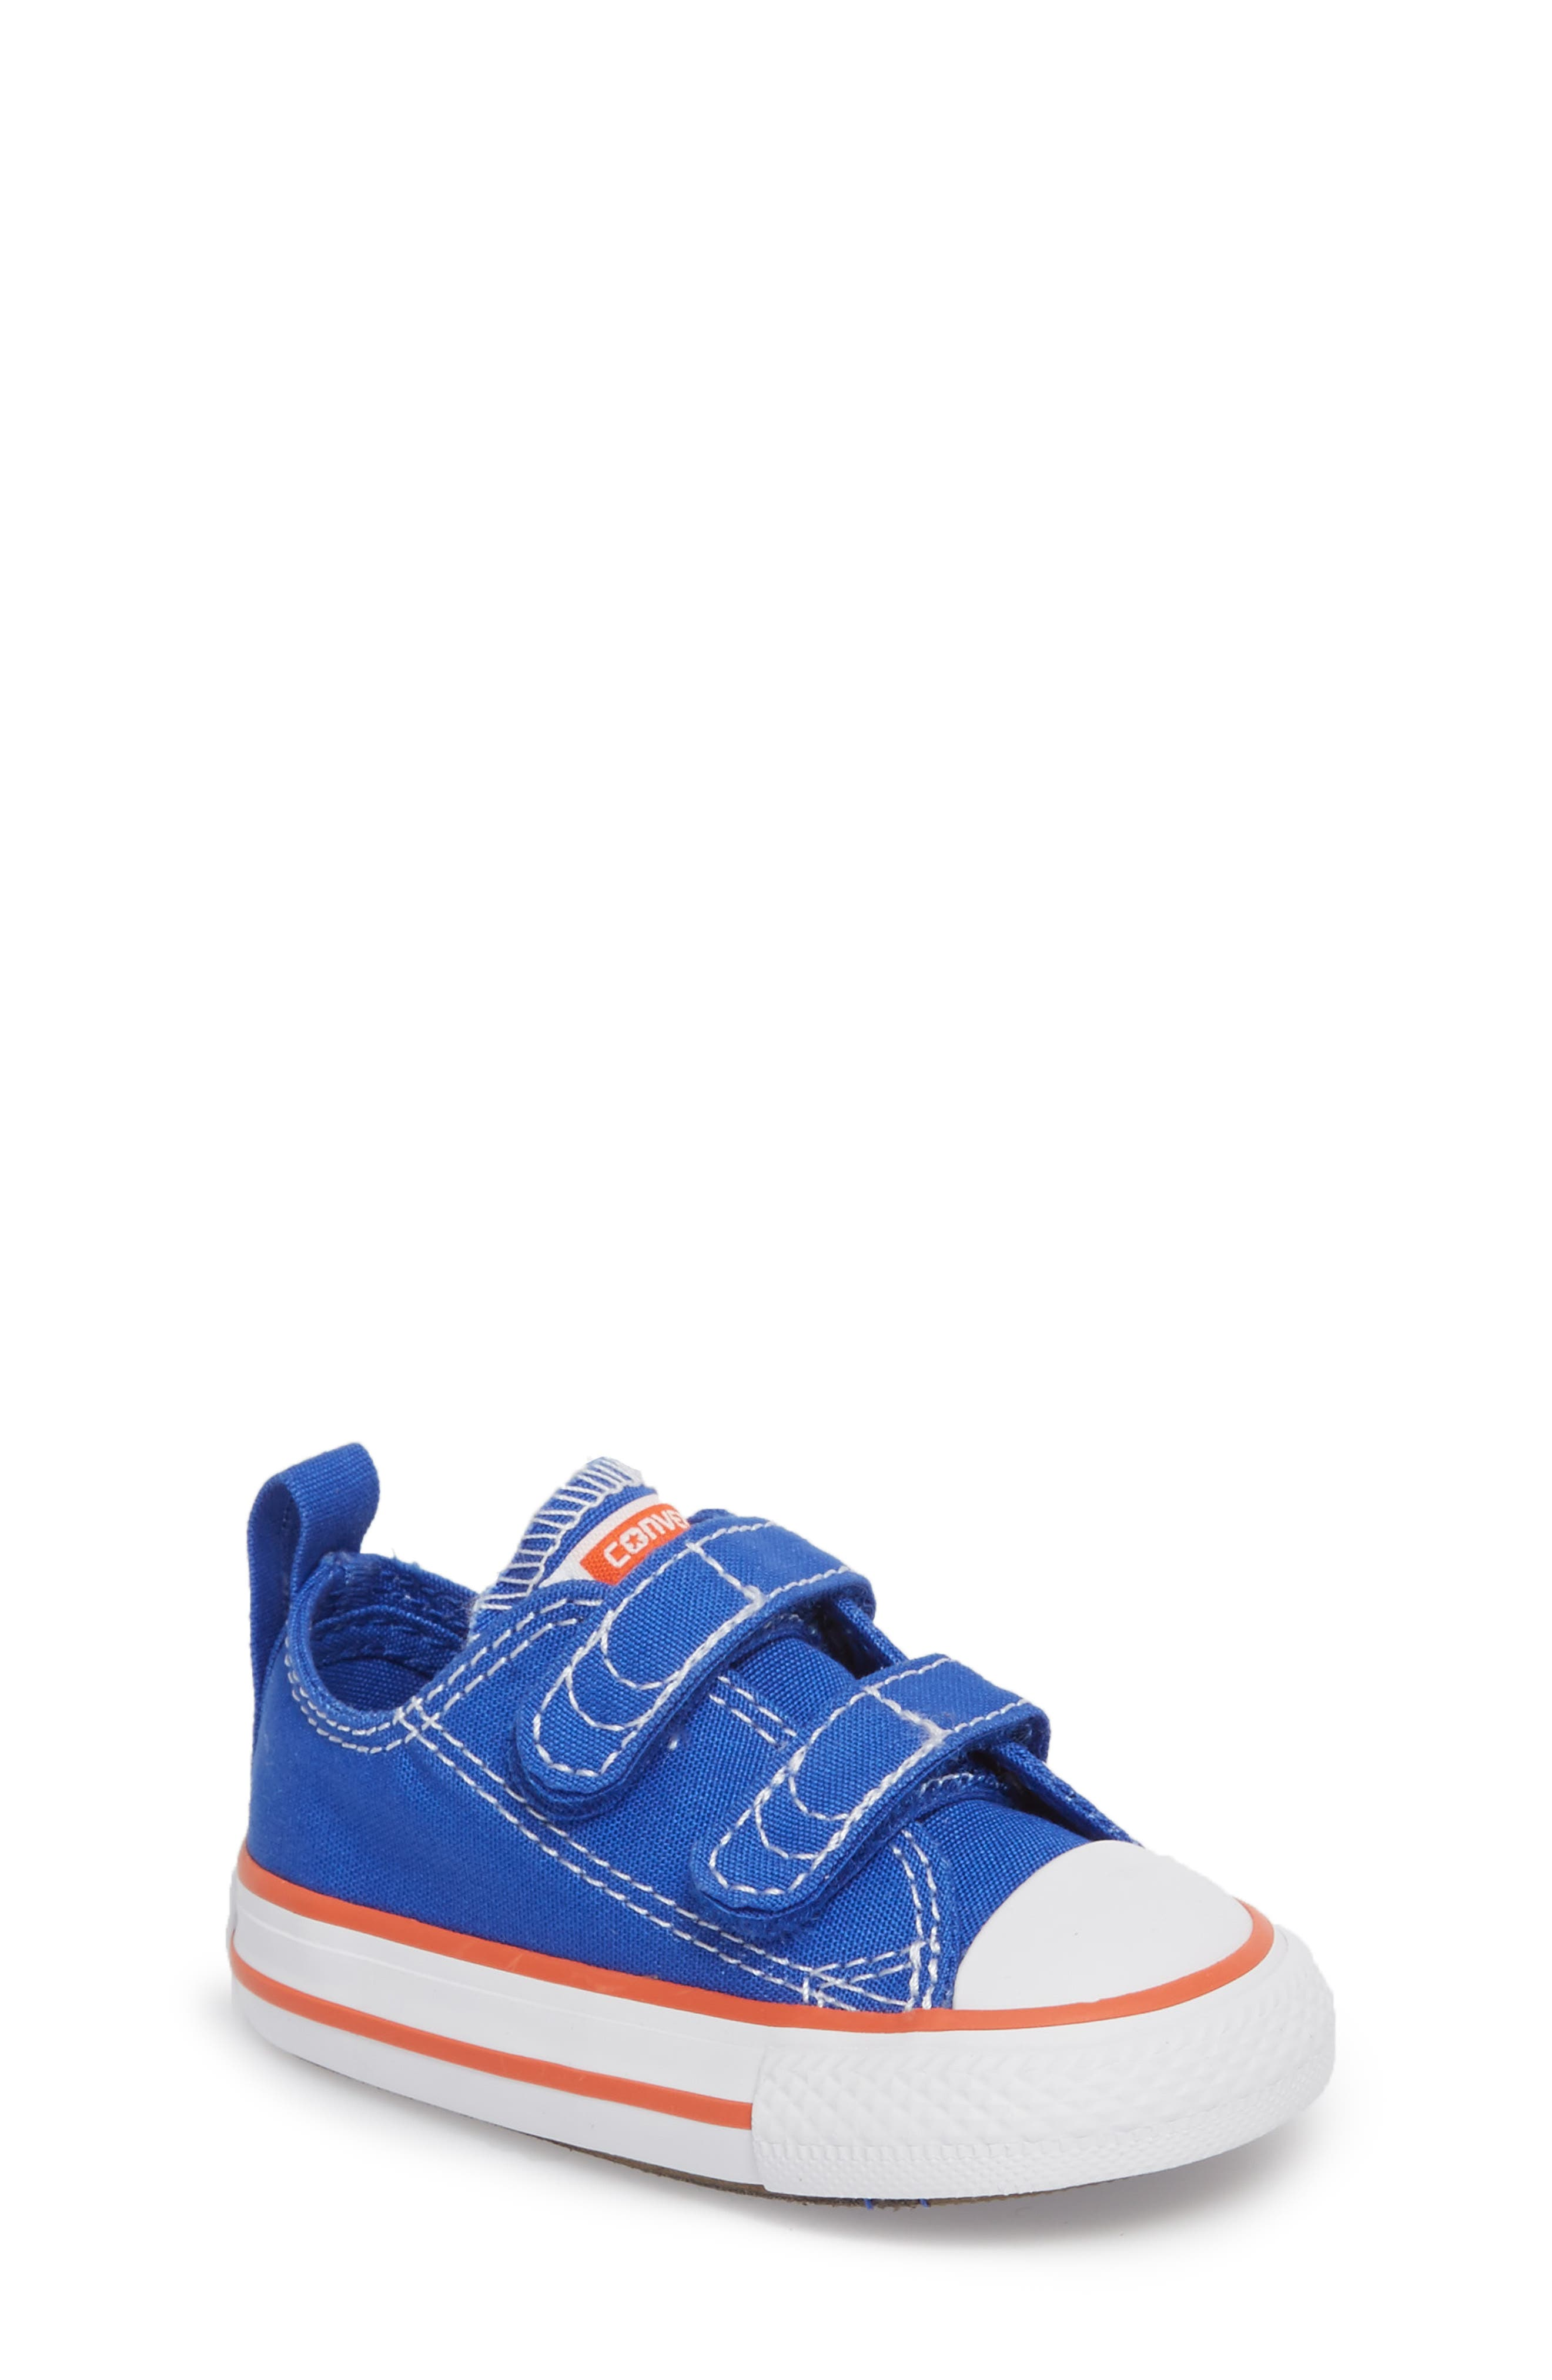 Main Image - Converse Chuck Taylor® All Star® Seasonal 2V Low Top Sneaker (Baby, Walker & Toddler)